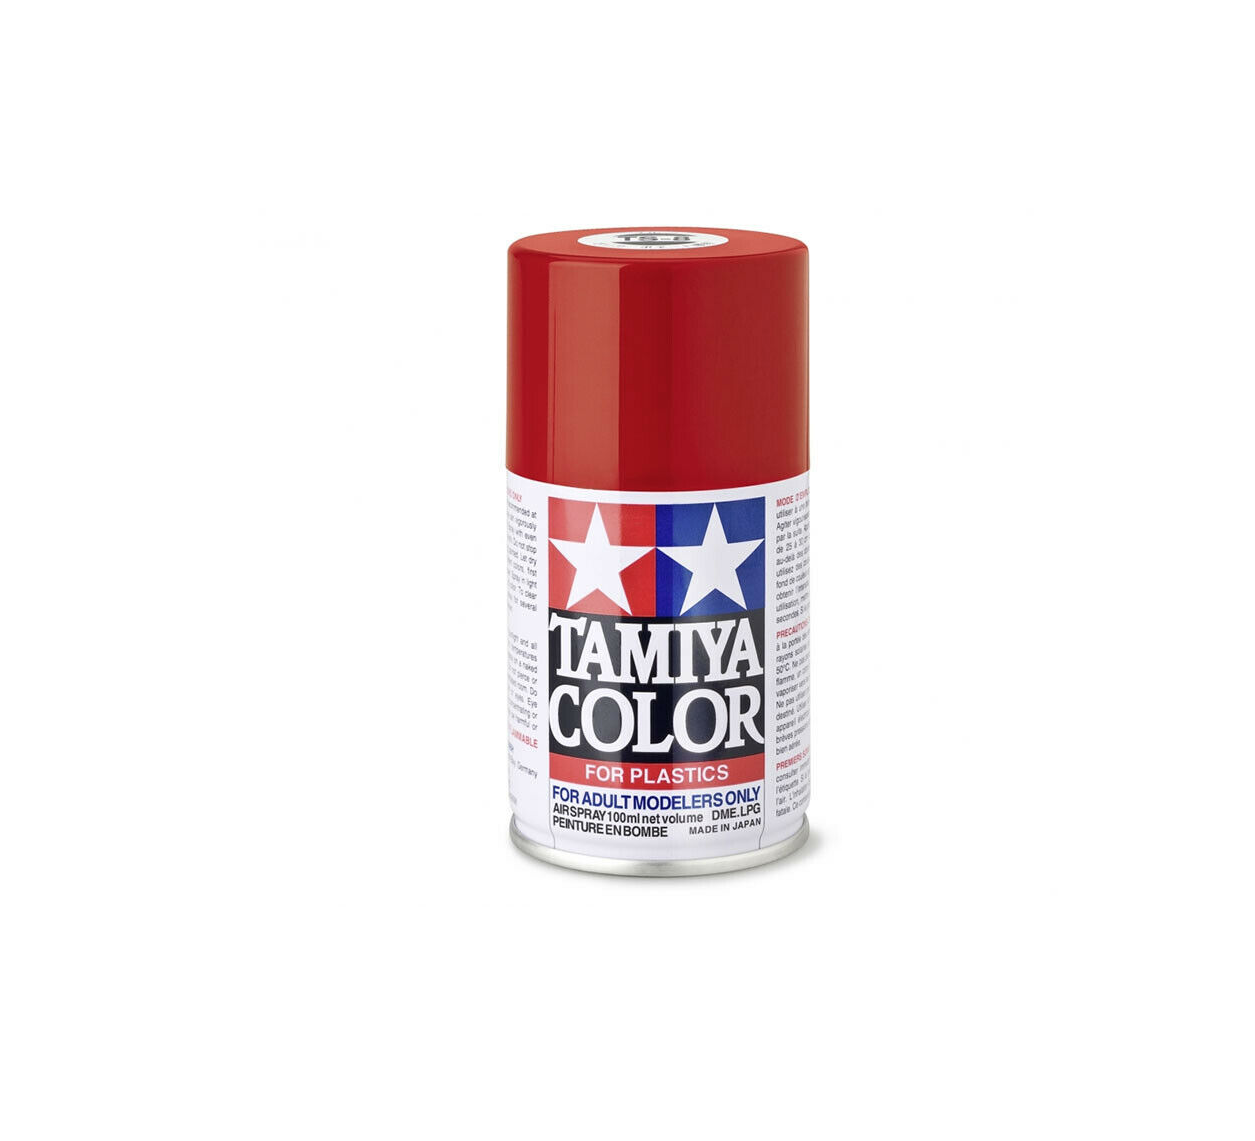 TAMIYA COLOR MODELISME MAQUETTE MINIATURE STATUE PROTECTION CANVAS TOILE 100 ML SPRAY CAN AEROSOL COULEUR ART ARTISTE DESSIN  4950344993505 COMASOUND KARTEL CSK ONLINE TS 8  ITALIAN RED